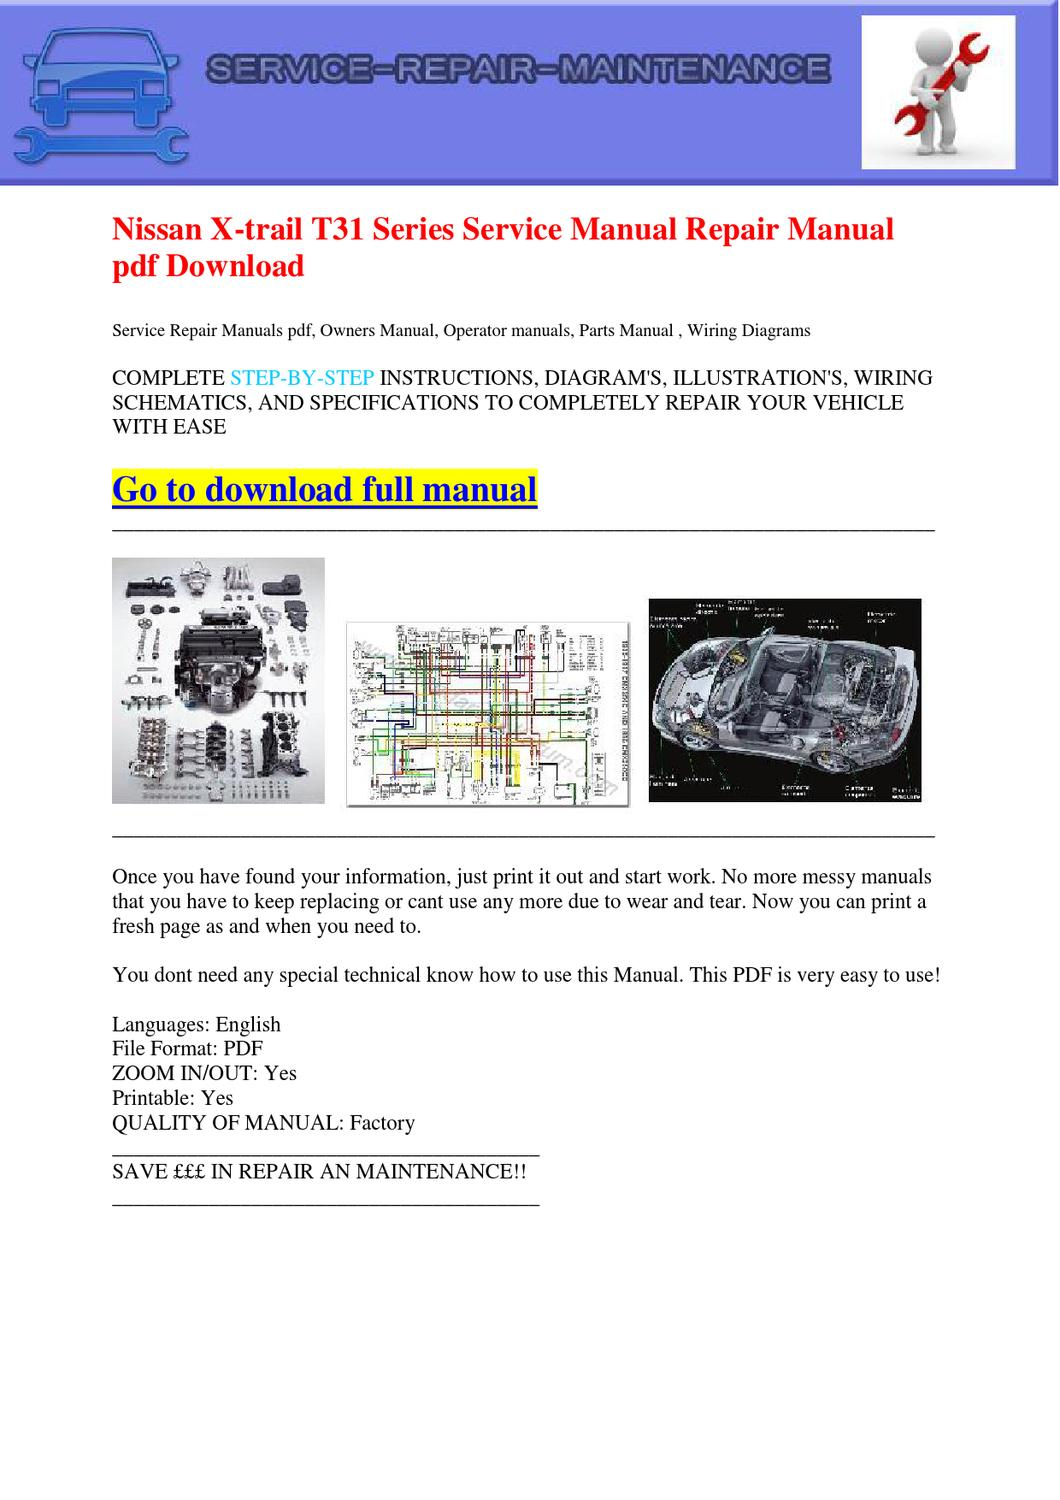 hight resolution of nissan x trail t31 series service manual repair manual pdf download by dernis castan issuu